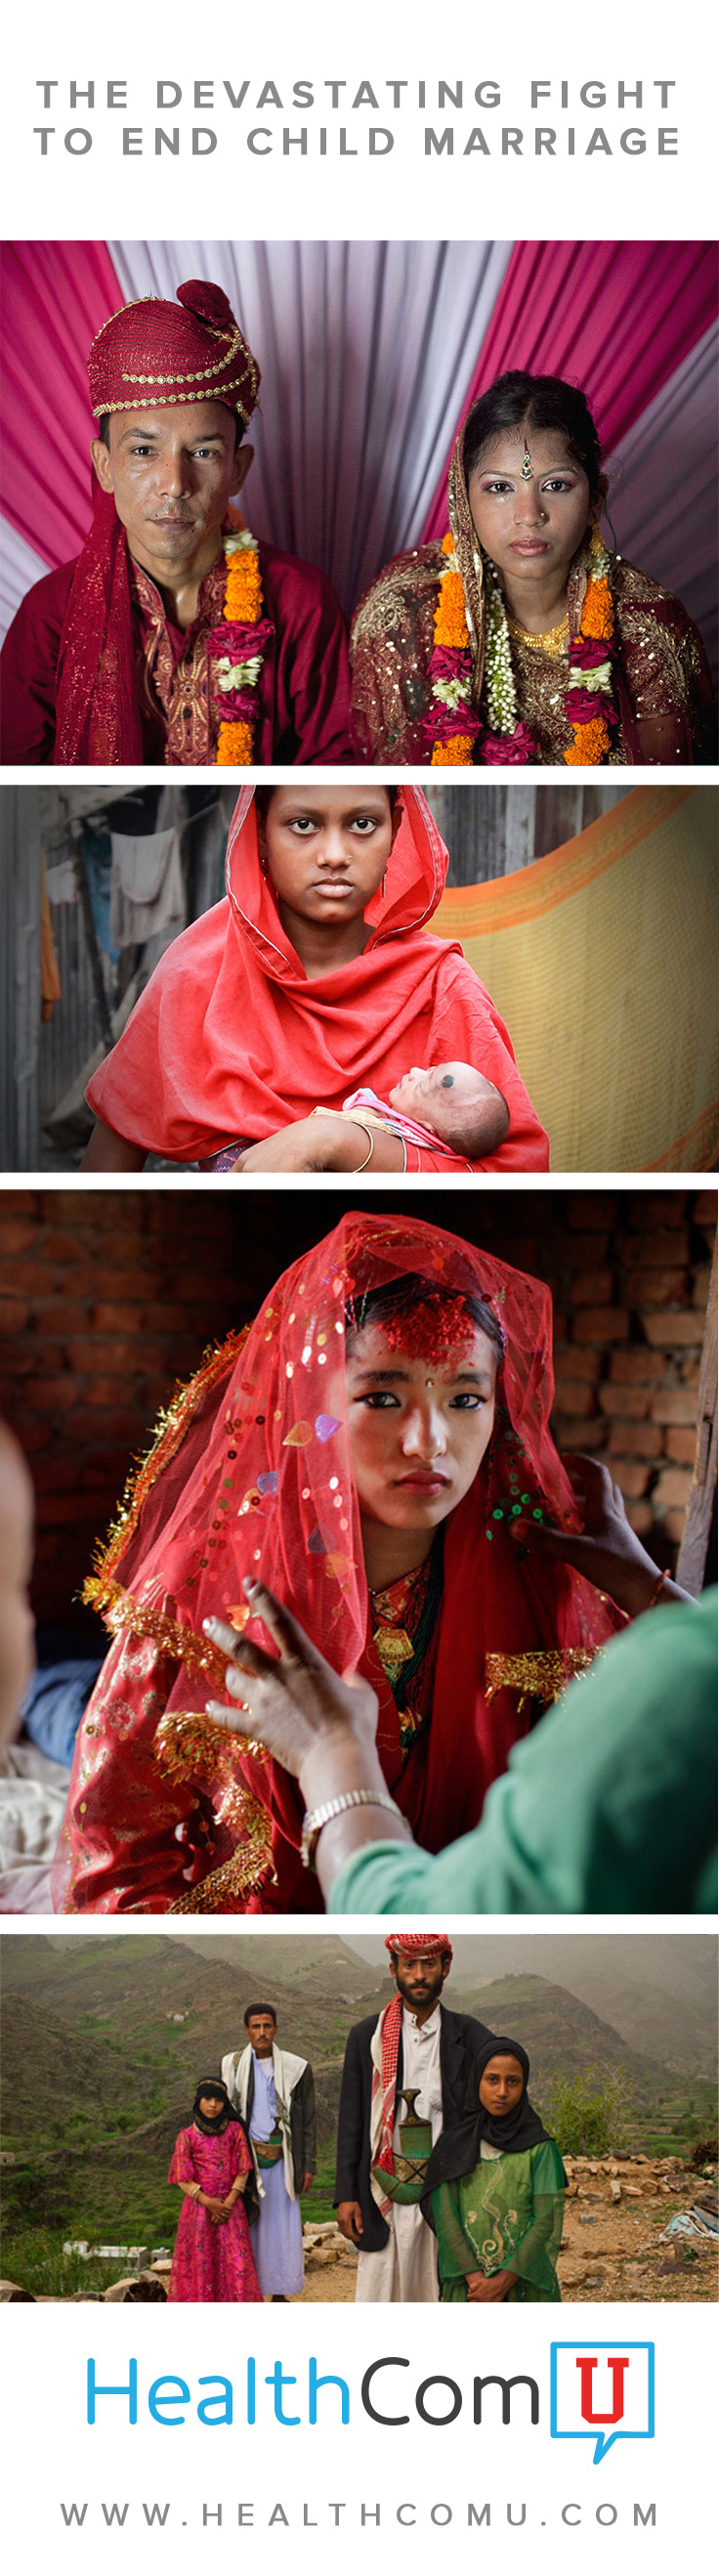 The Devastating Fight to End Child Marriage   HealthComU